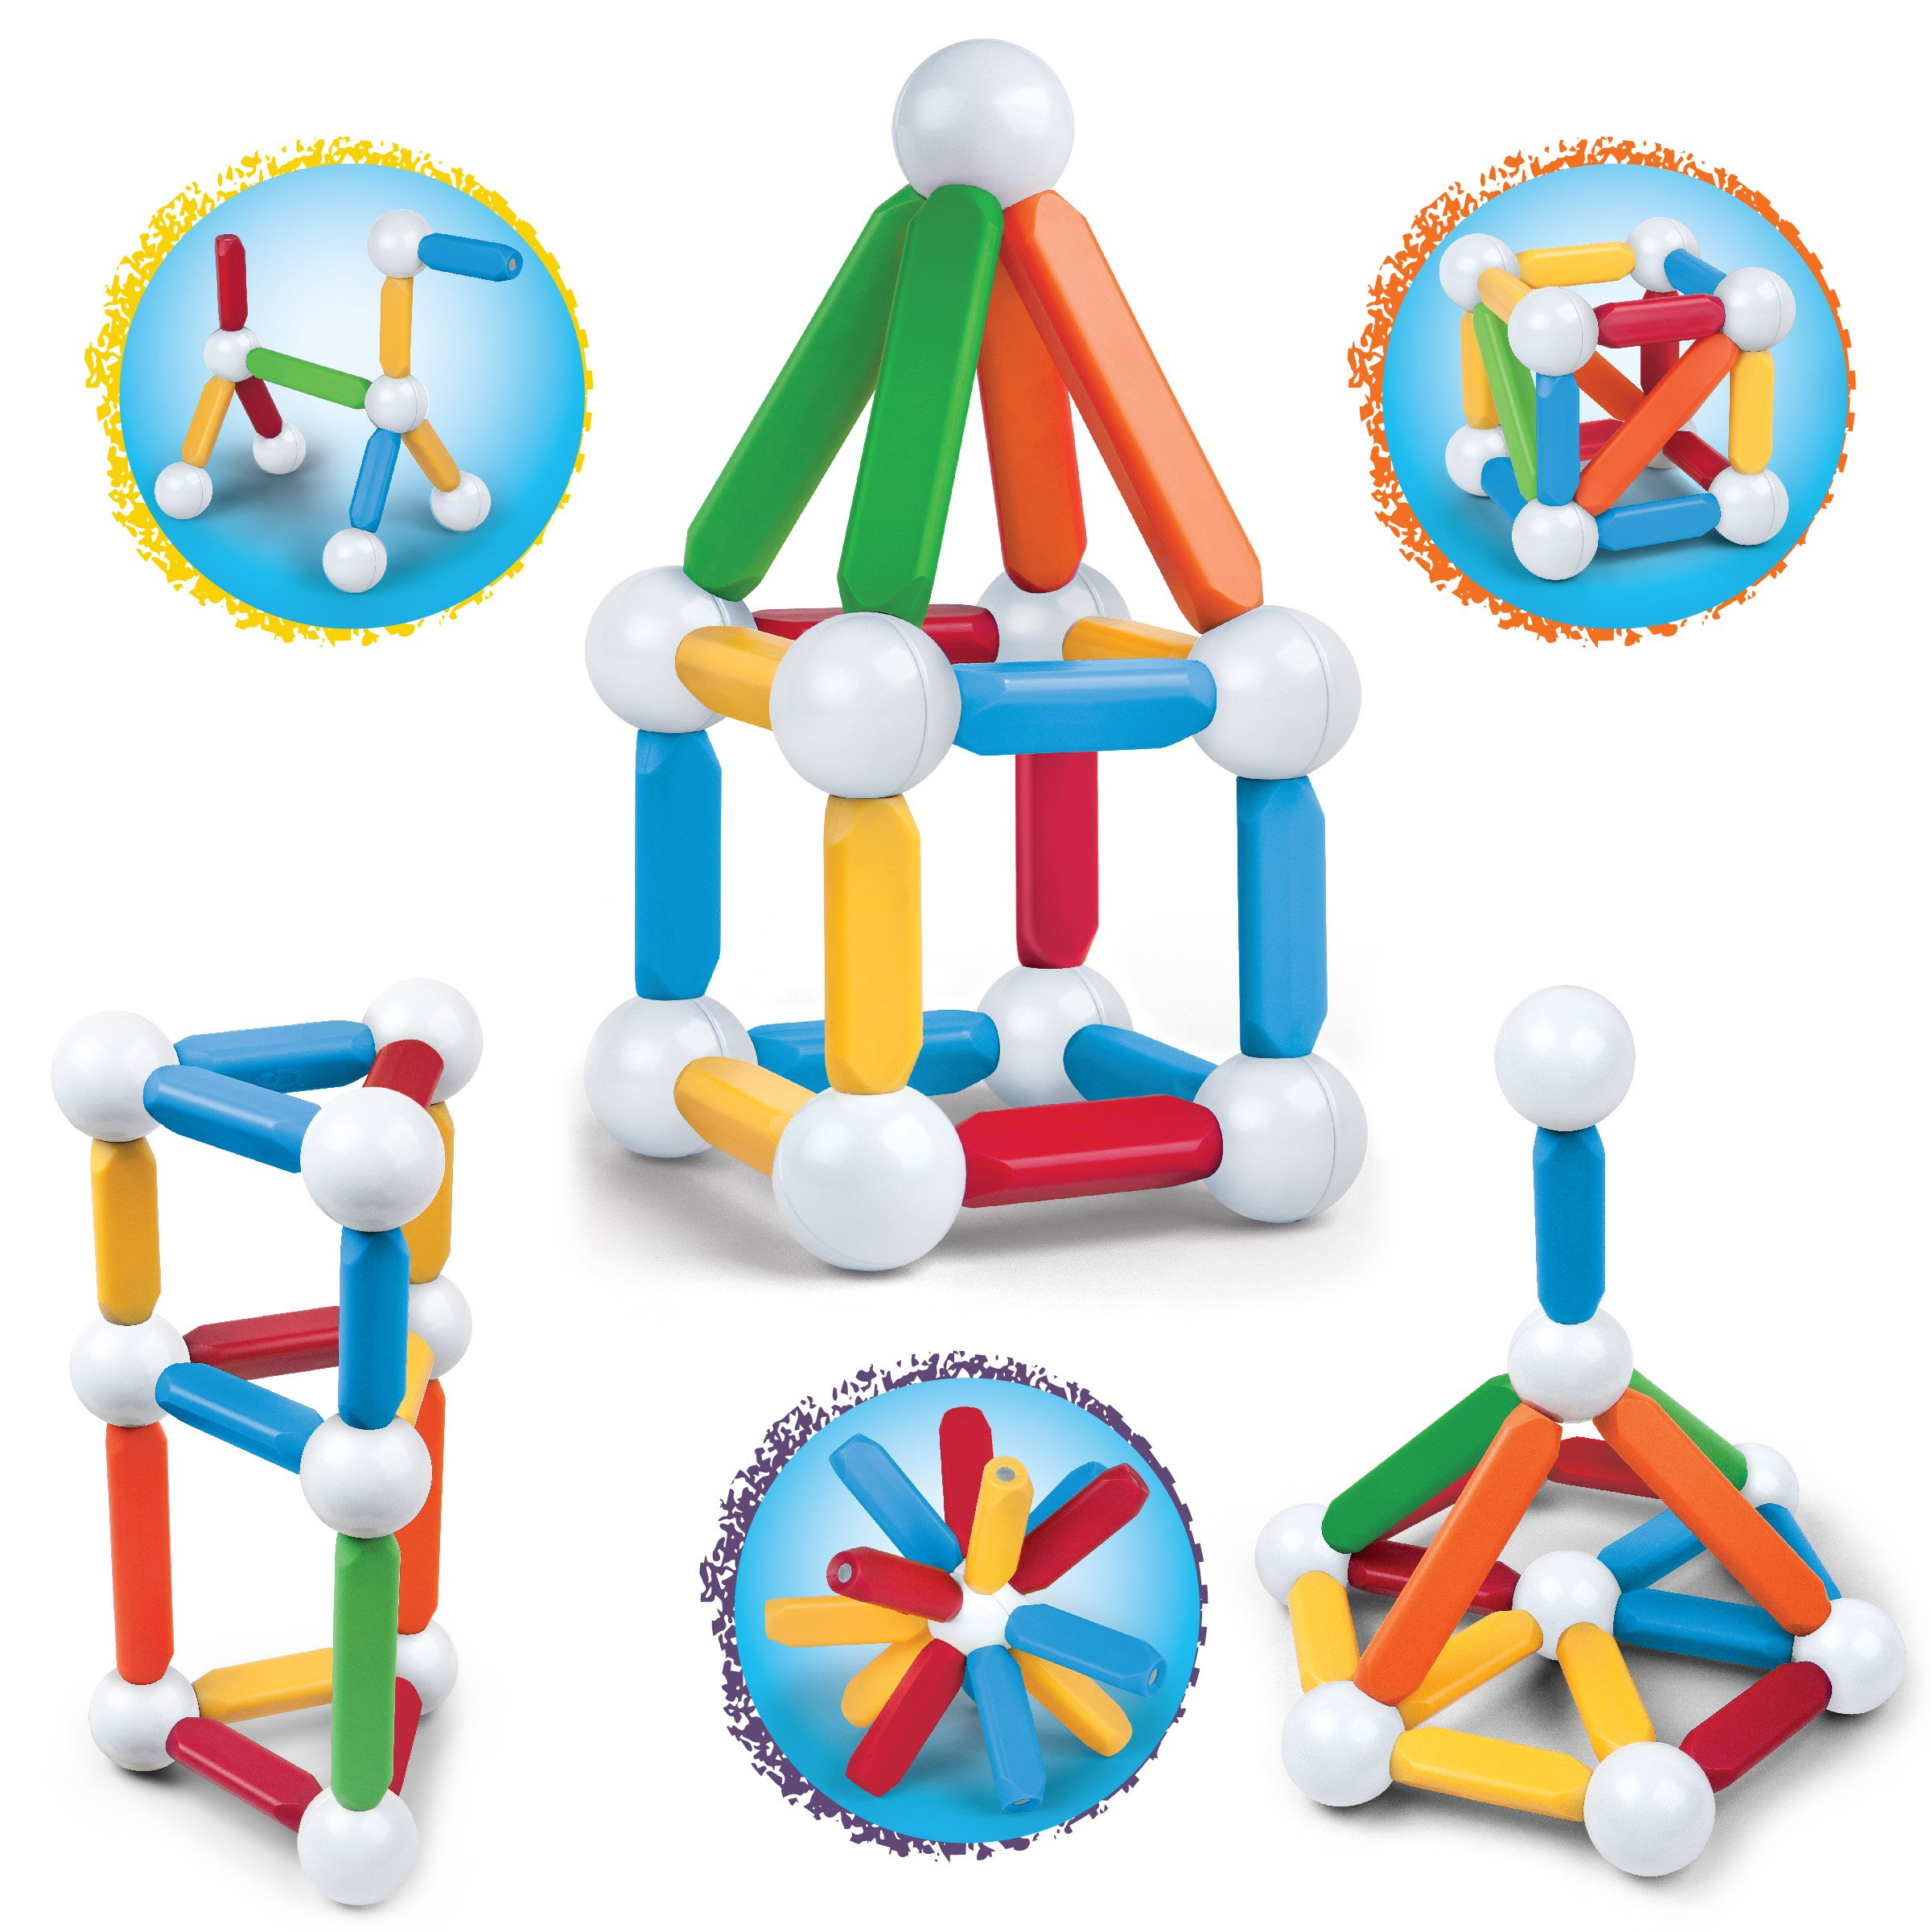 Discovery Kids 25 Piece Magnetic Blocks, Colorful Building Block Set for Boys/Girls, Best 3D Educational Creativity, STEM Toys for Children – Red, Green, Blue, Yellow, White